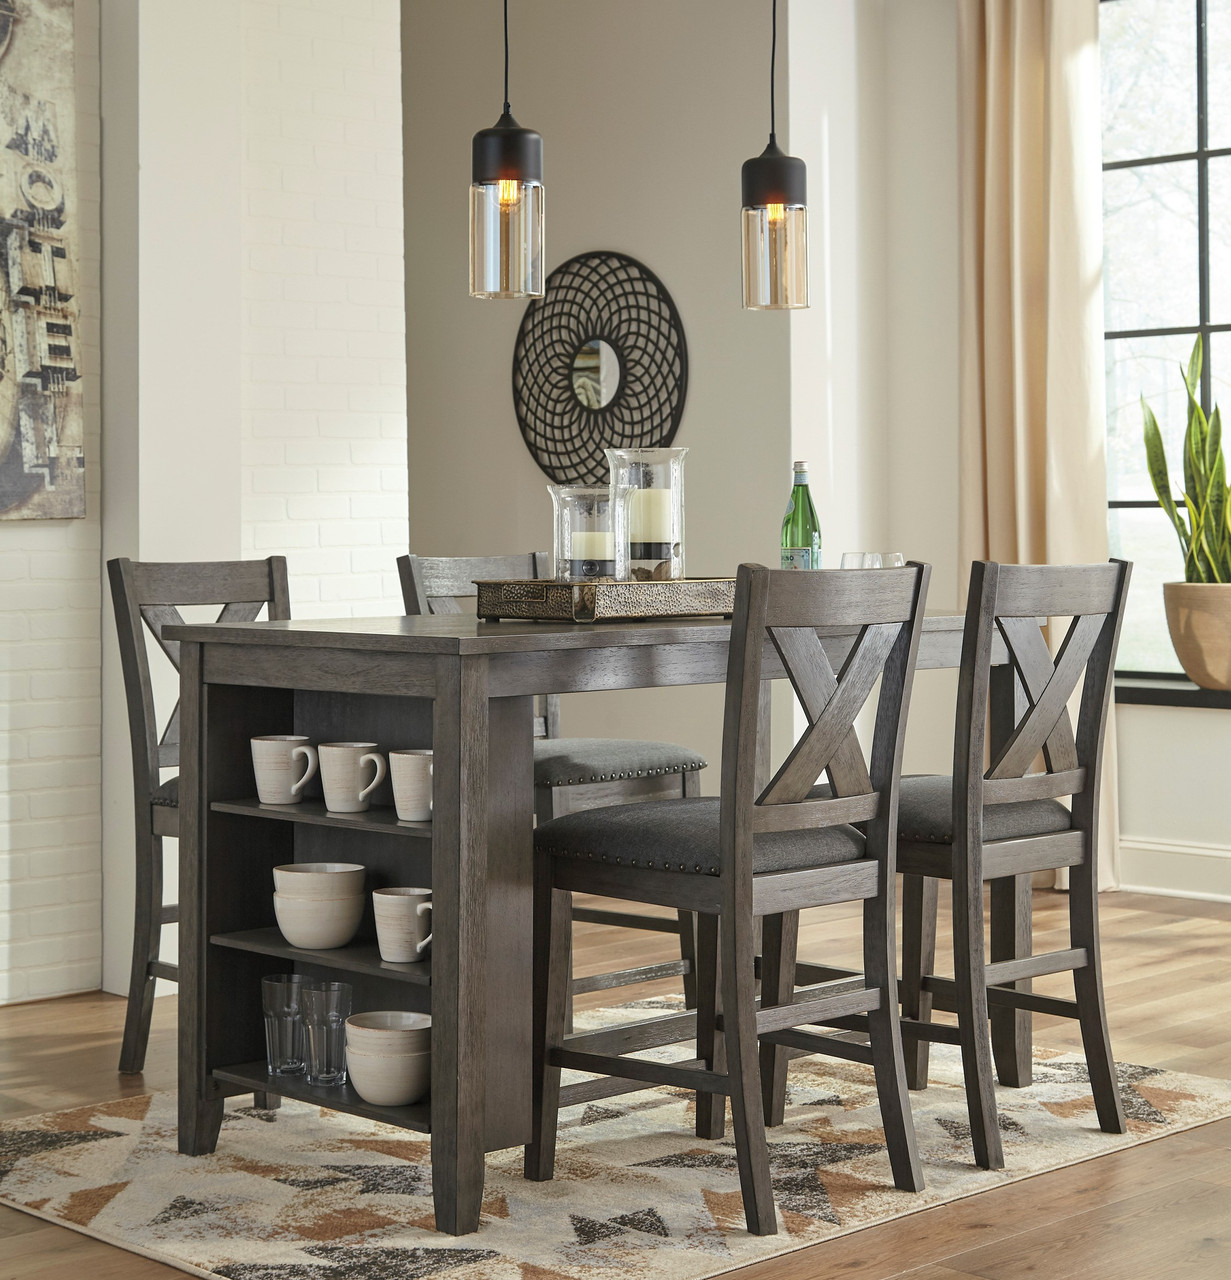 5 Piece Counter Height Dining Set Gray